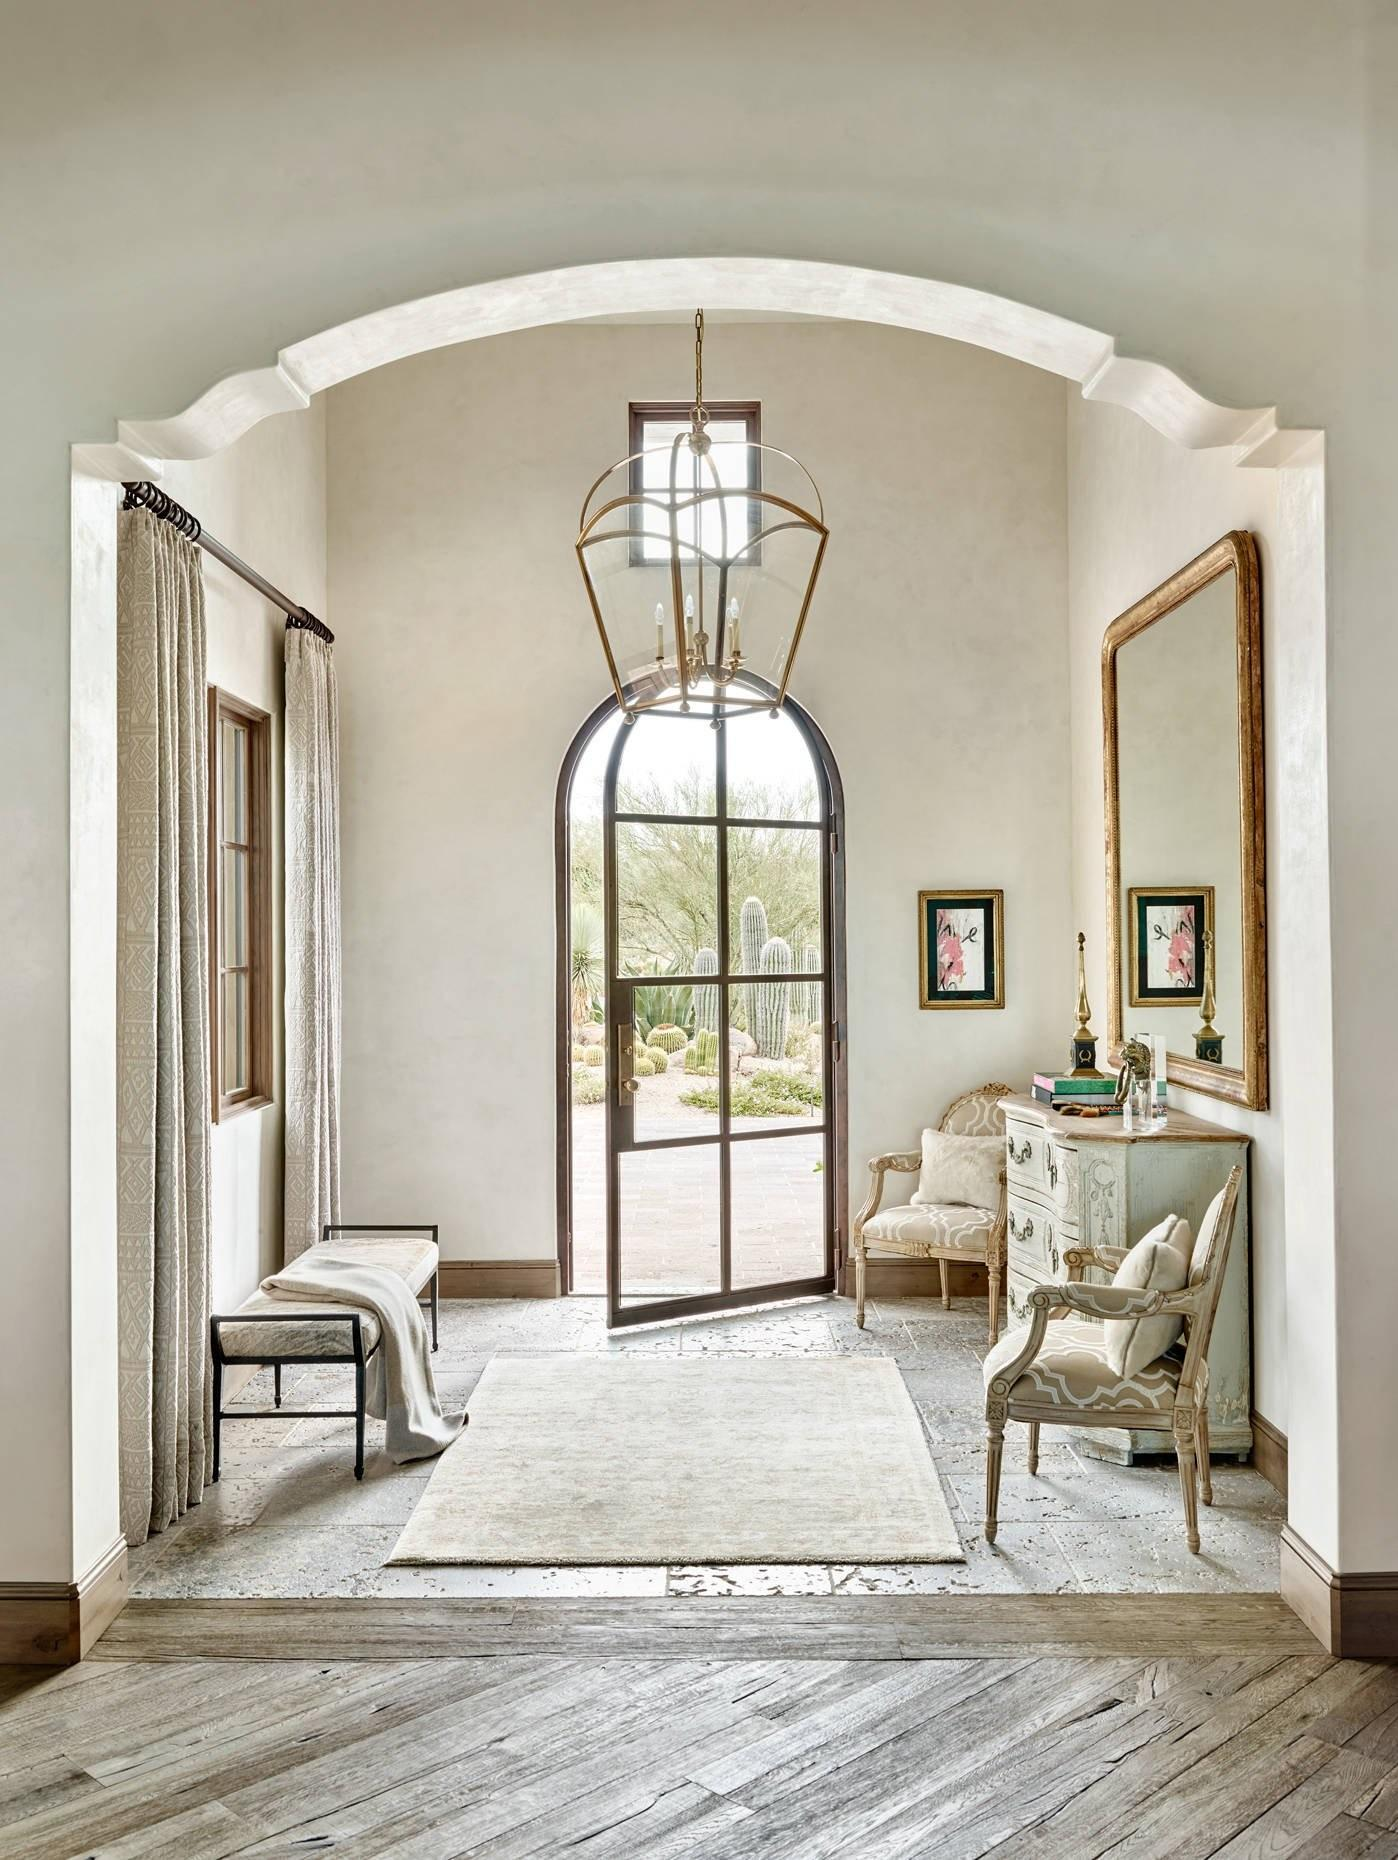 Uplifting Mediterranean Hall Designs